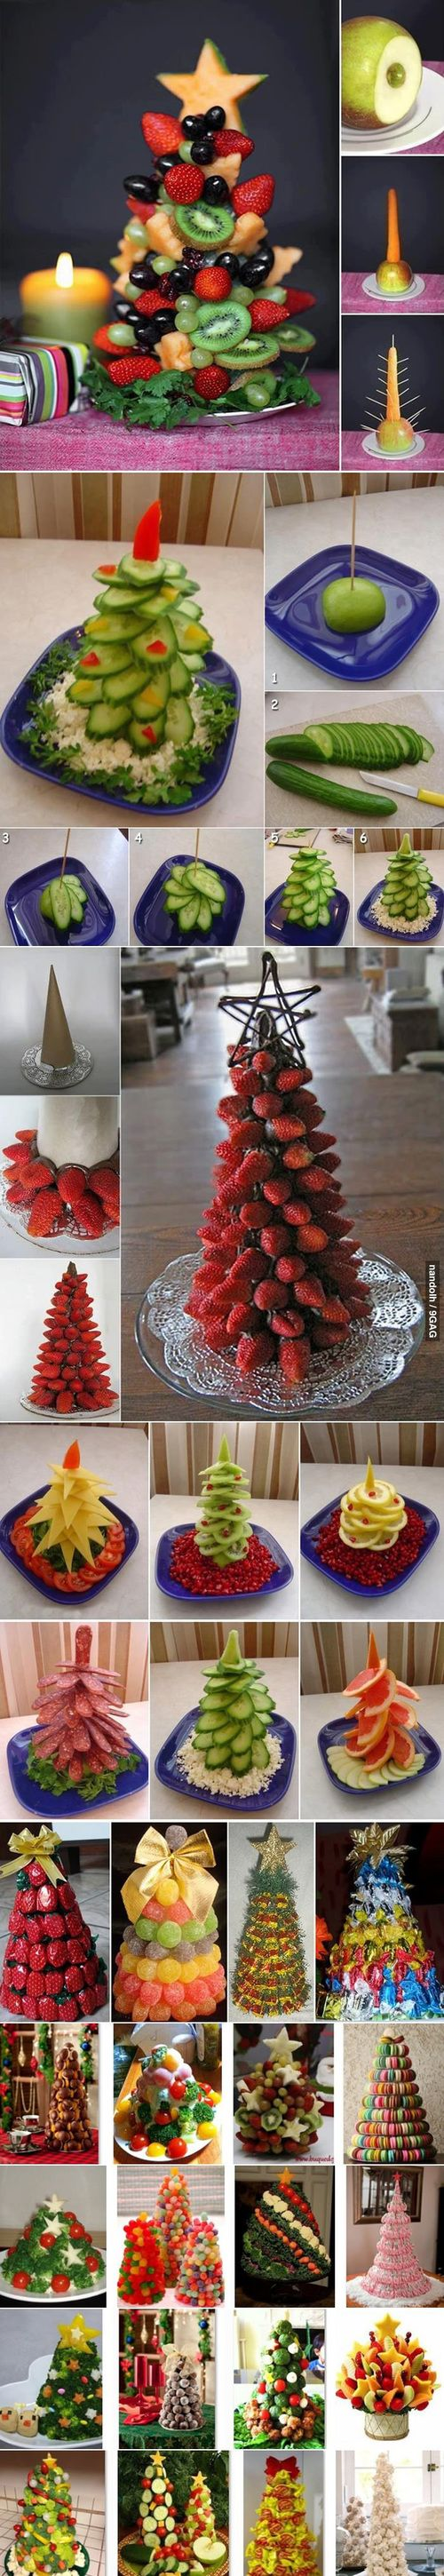 DIY fruit christmas trees, love this idea for a party